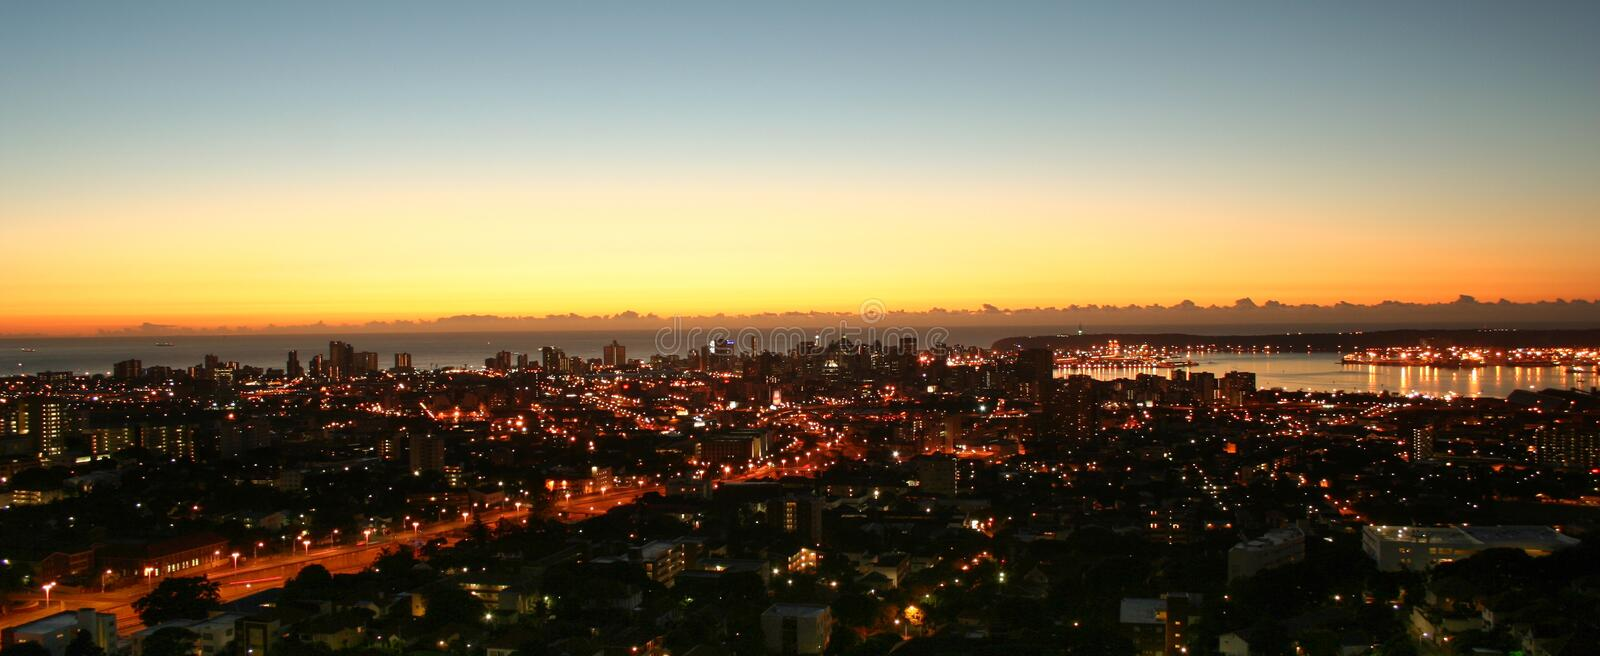 Good morning Durban. Sun rise over Durban City, South Africa stock photos